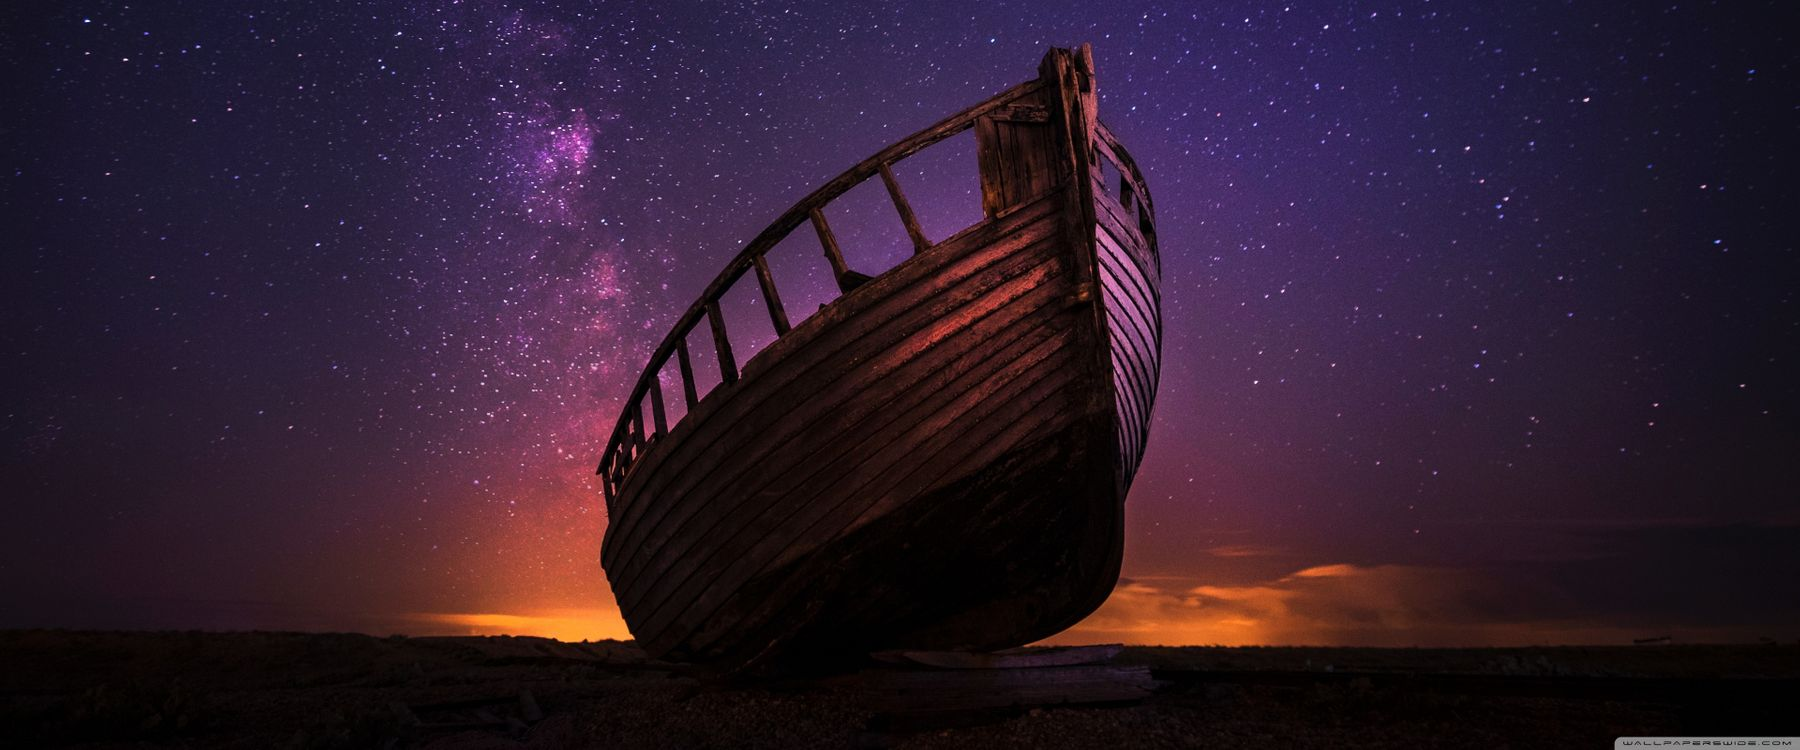 Photos for free Night, ship, stars - to the desktop